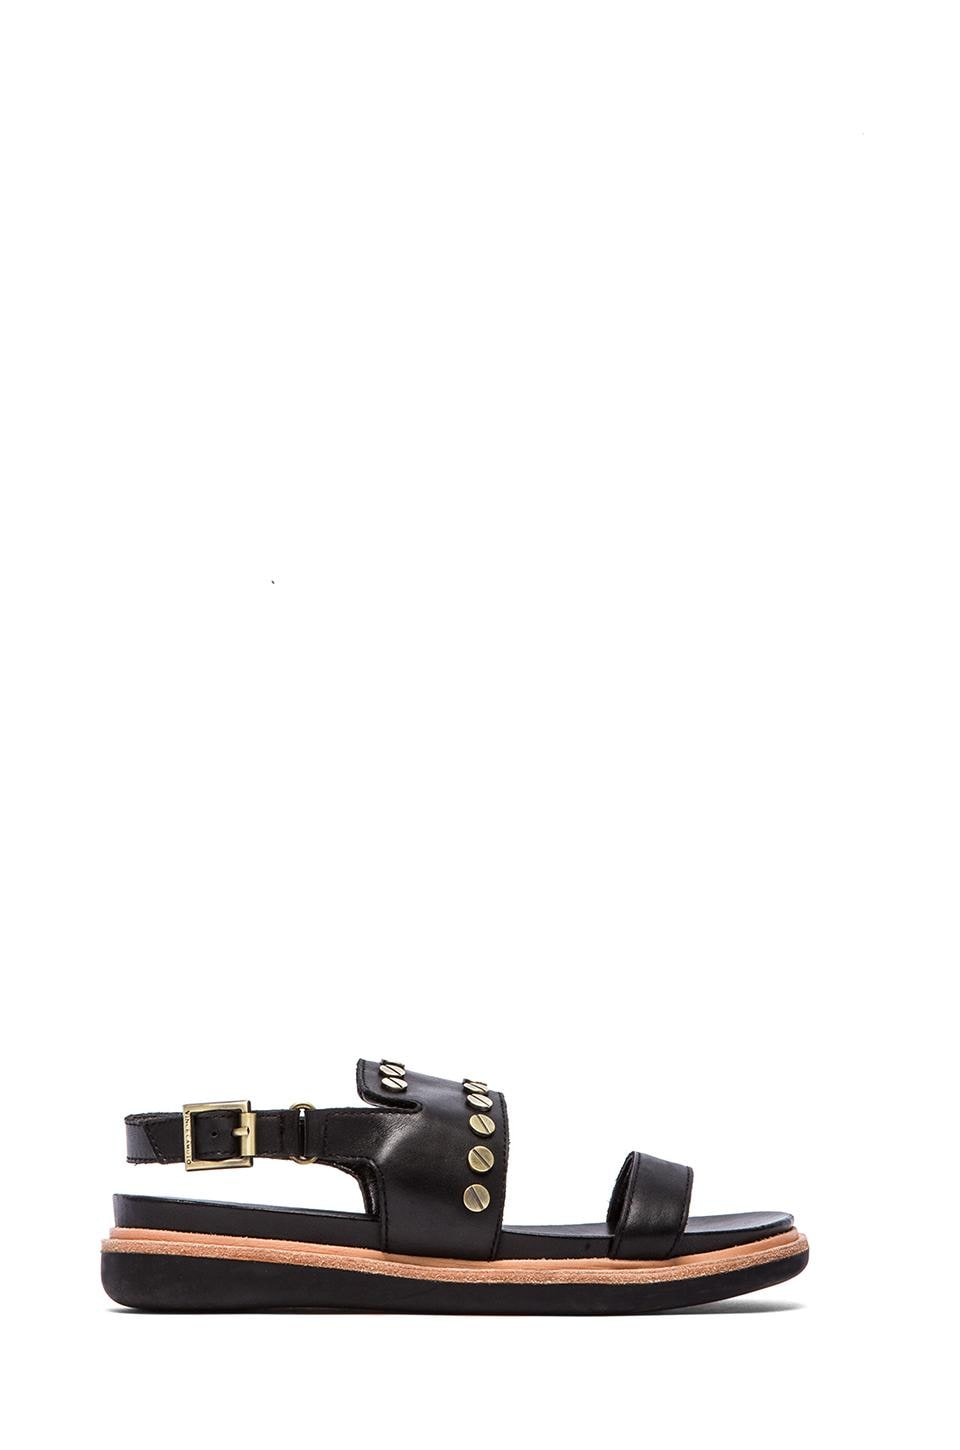 Vince Camuto Hennah Sandal in Black